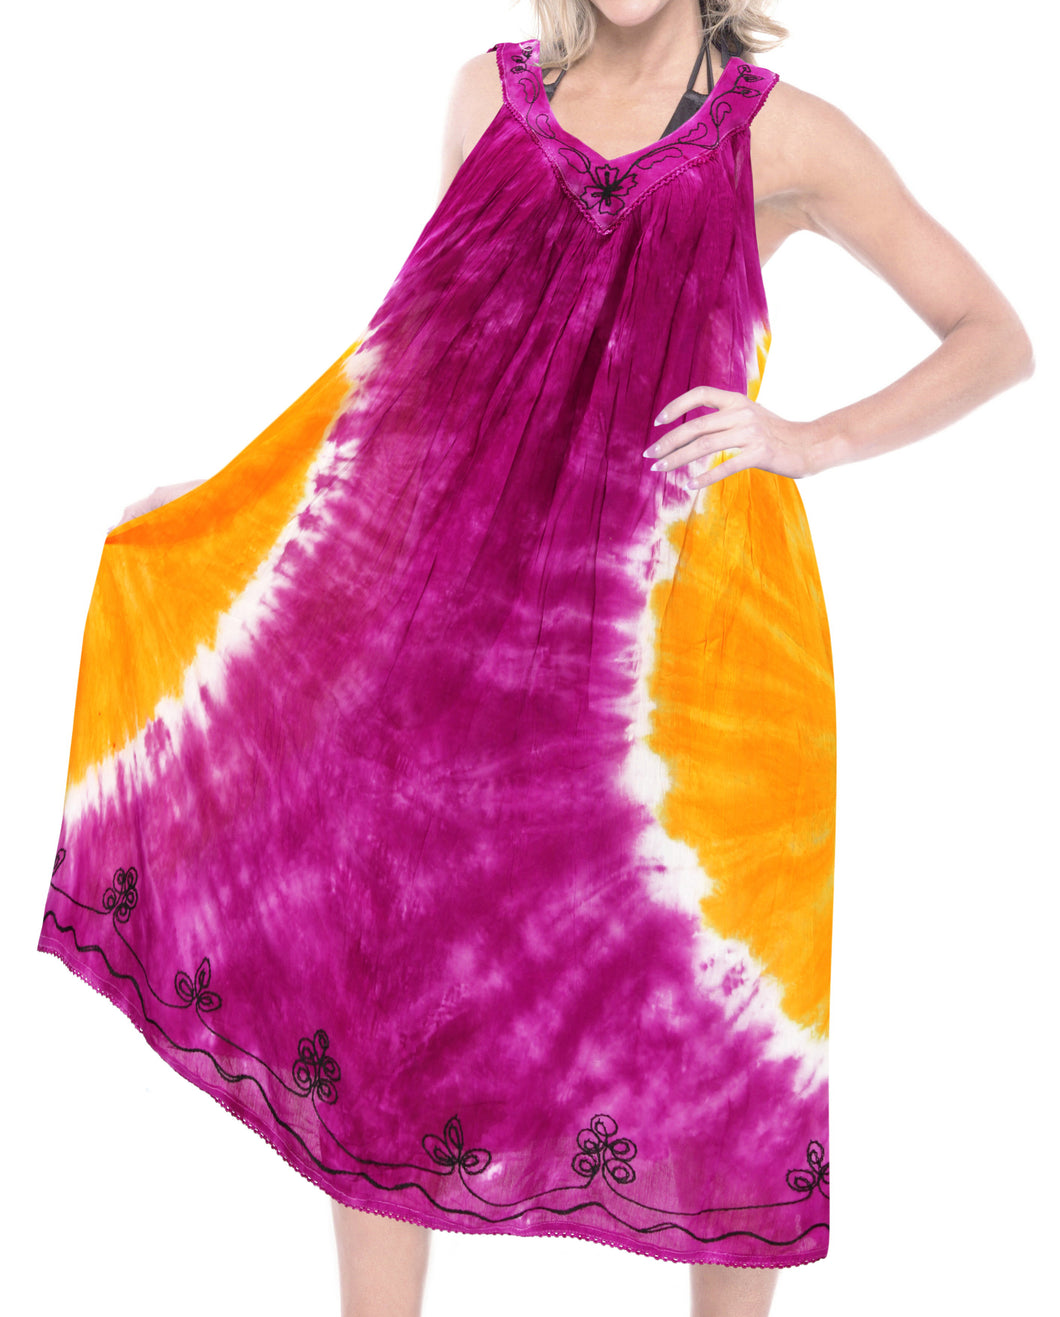 la-leela-casual-dress-beach-cover-up-rayon-tie-dye-cruise-length-knee-halter-top-osfm-14-28-l-4x-pink_3663